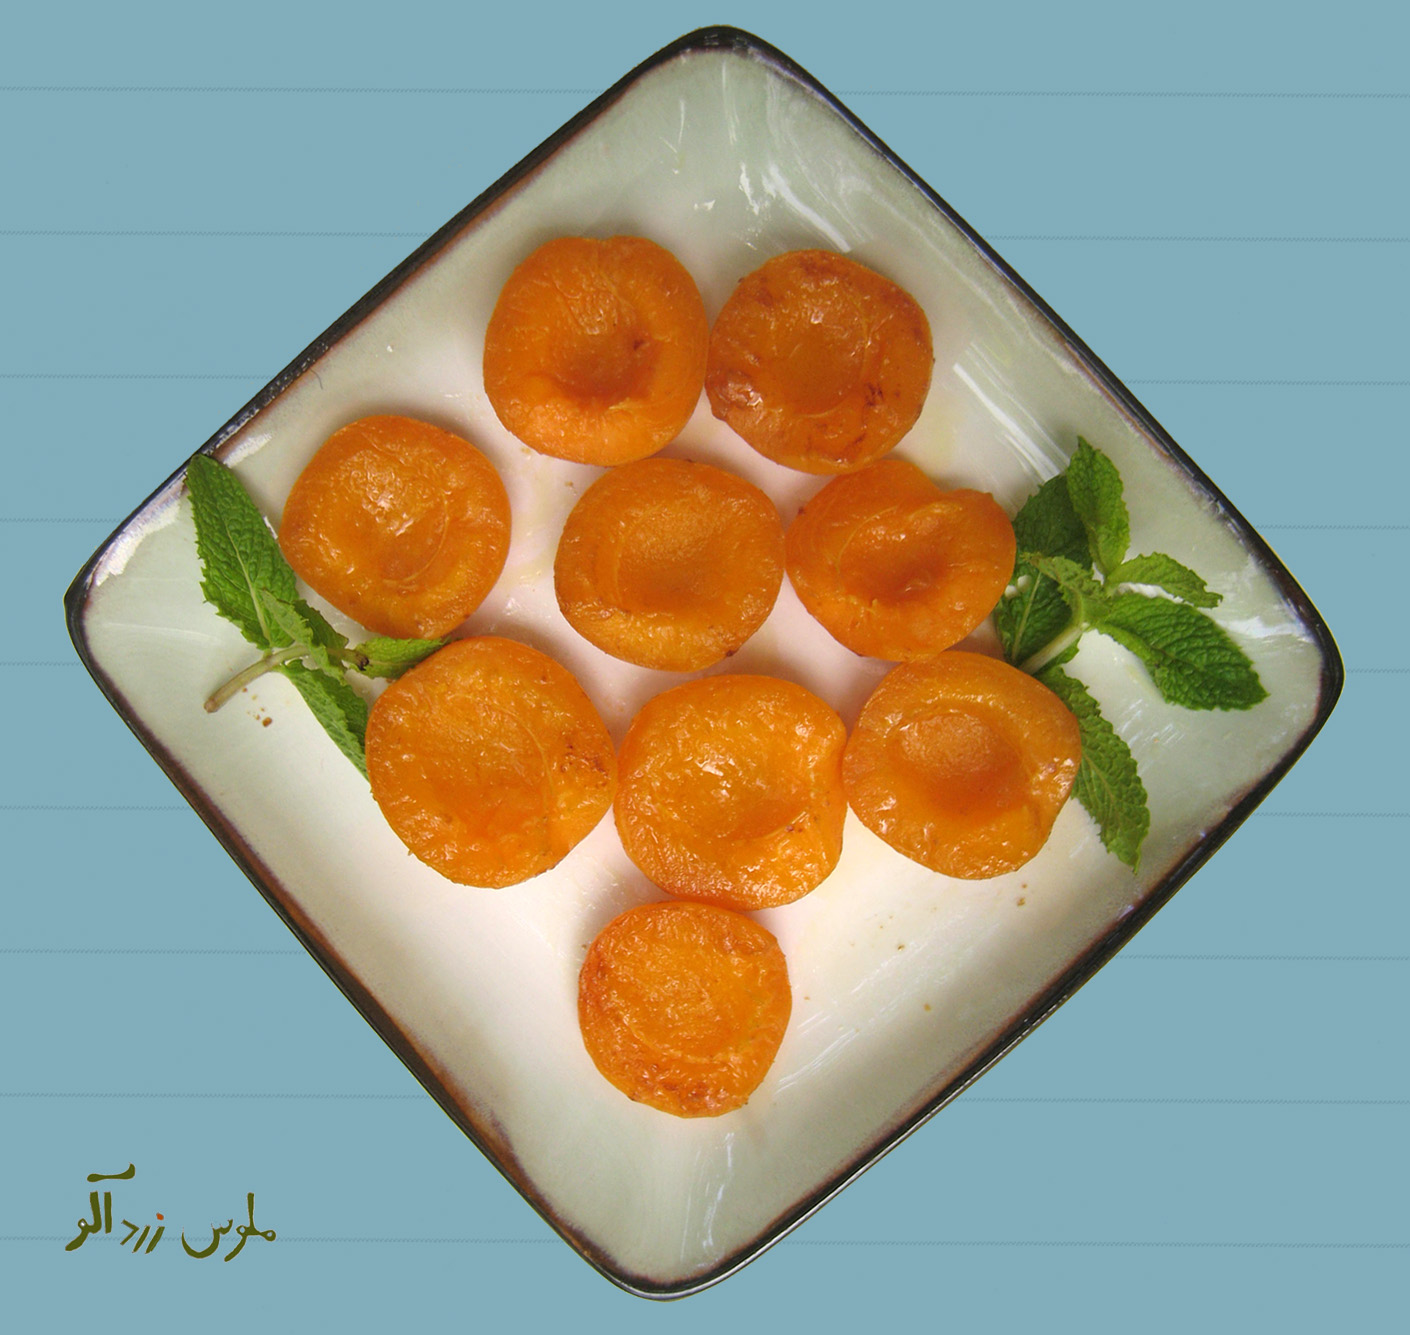 Maloos zardaloo charming apricot fig quince when forumfinder Gallery